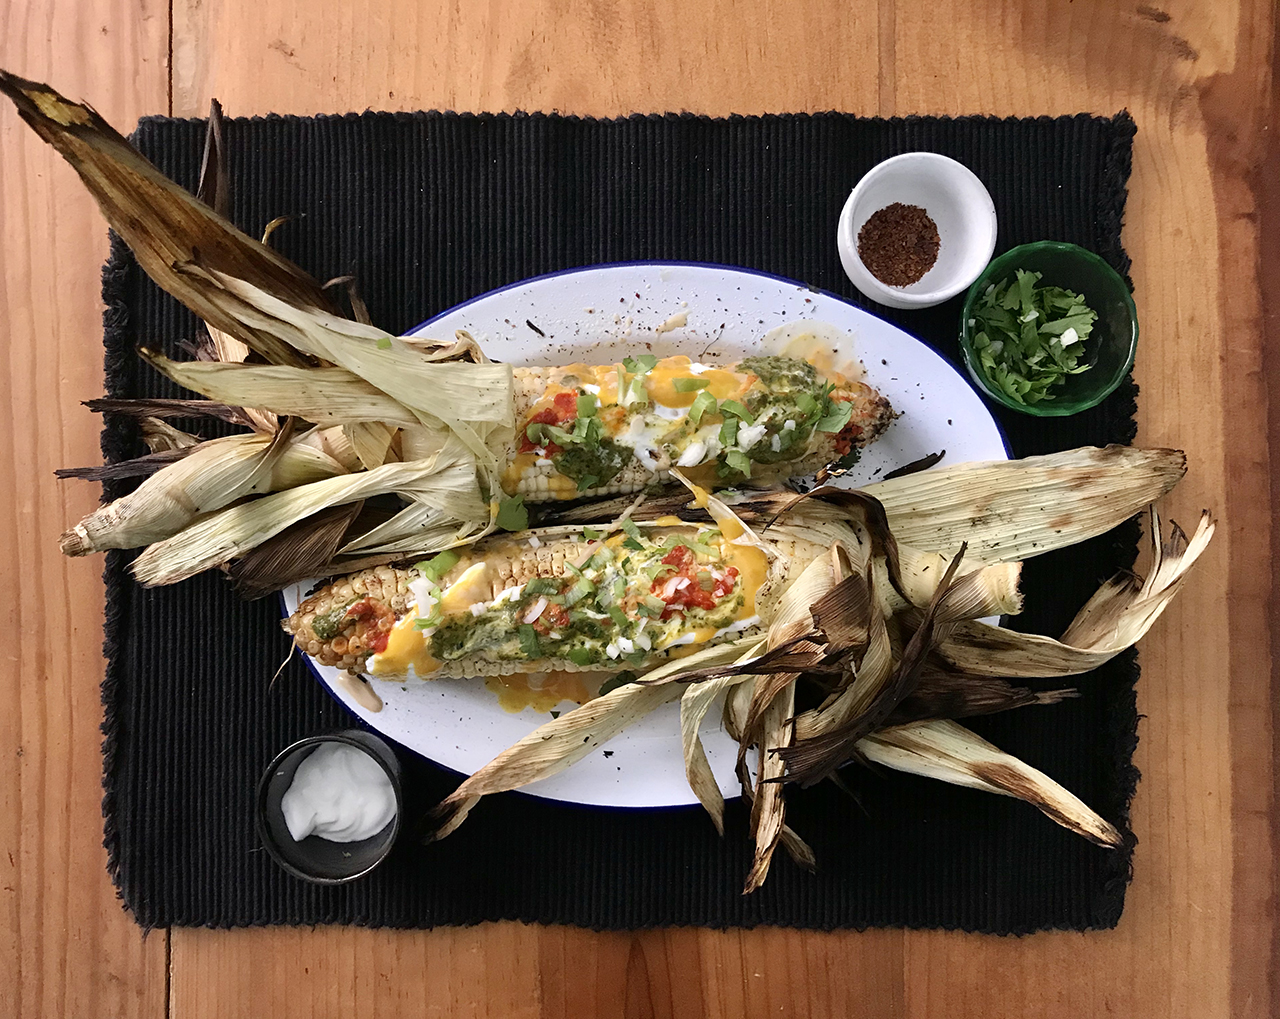 two grilled ears of corn on a white plate